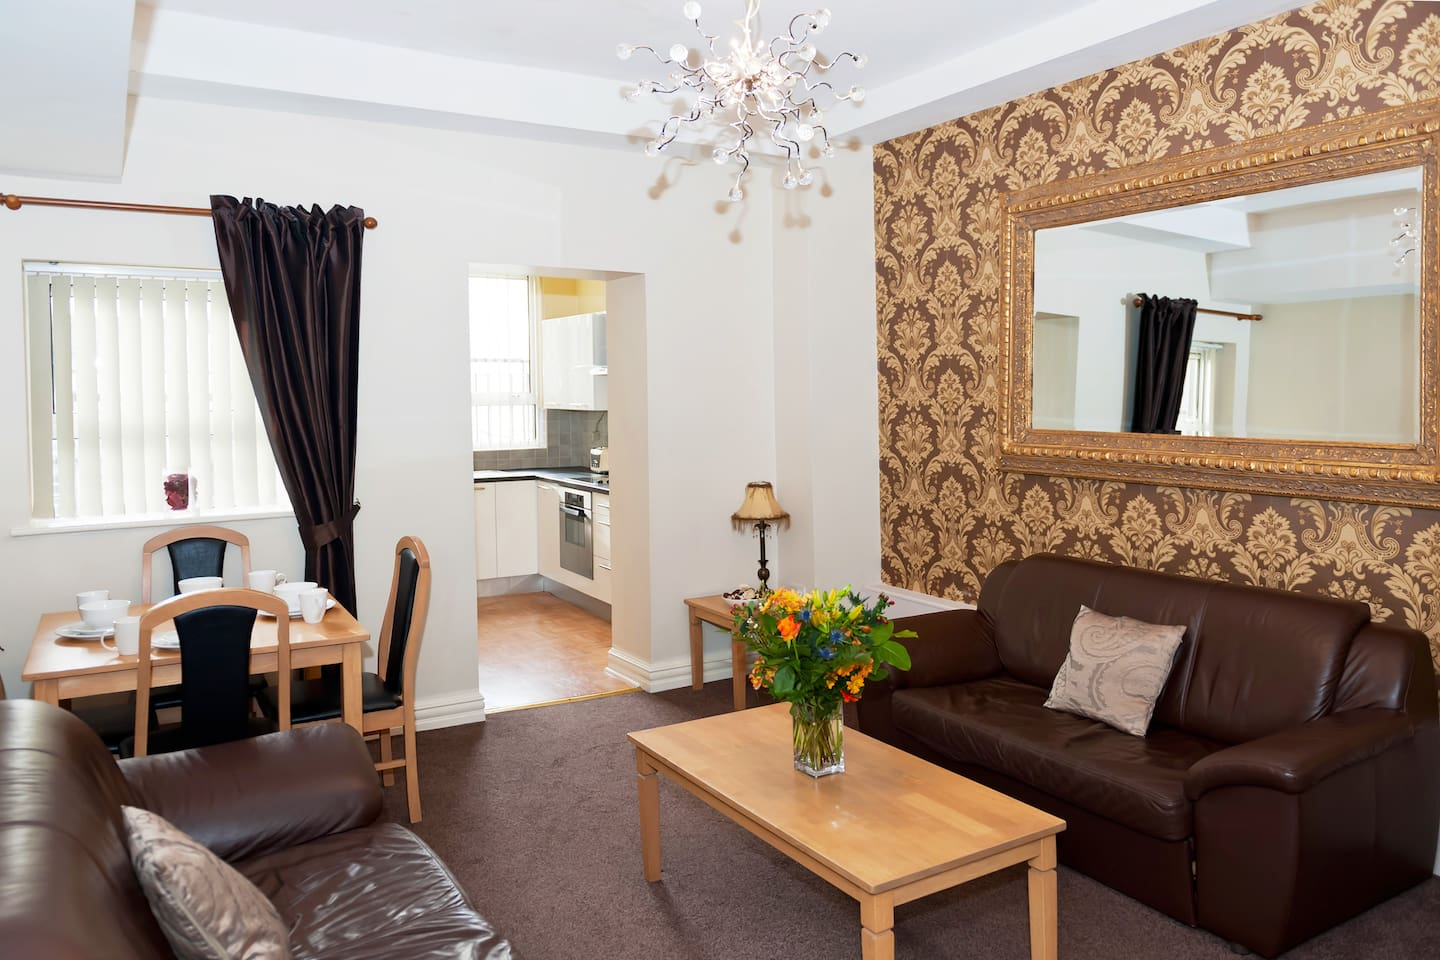 The sitting room has a sumptuous gold mirror and wallpaper.